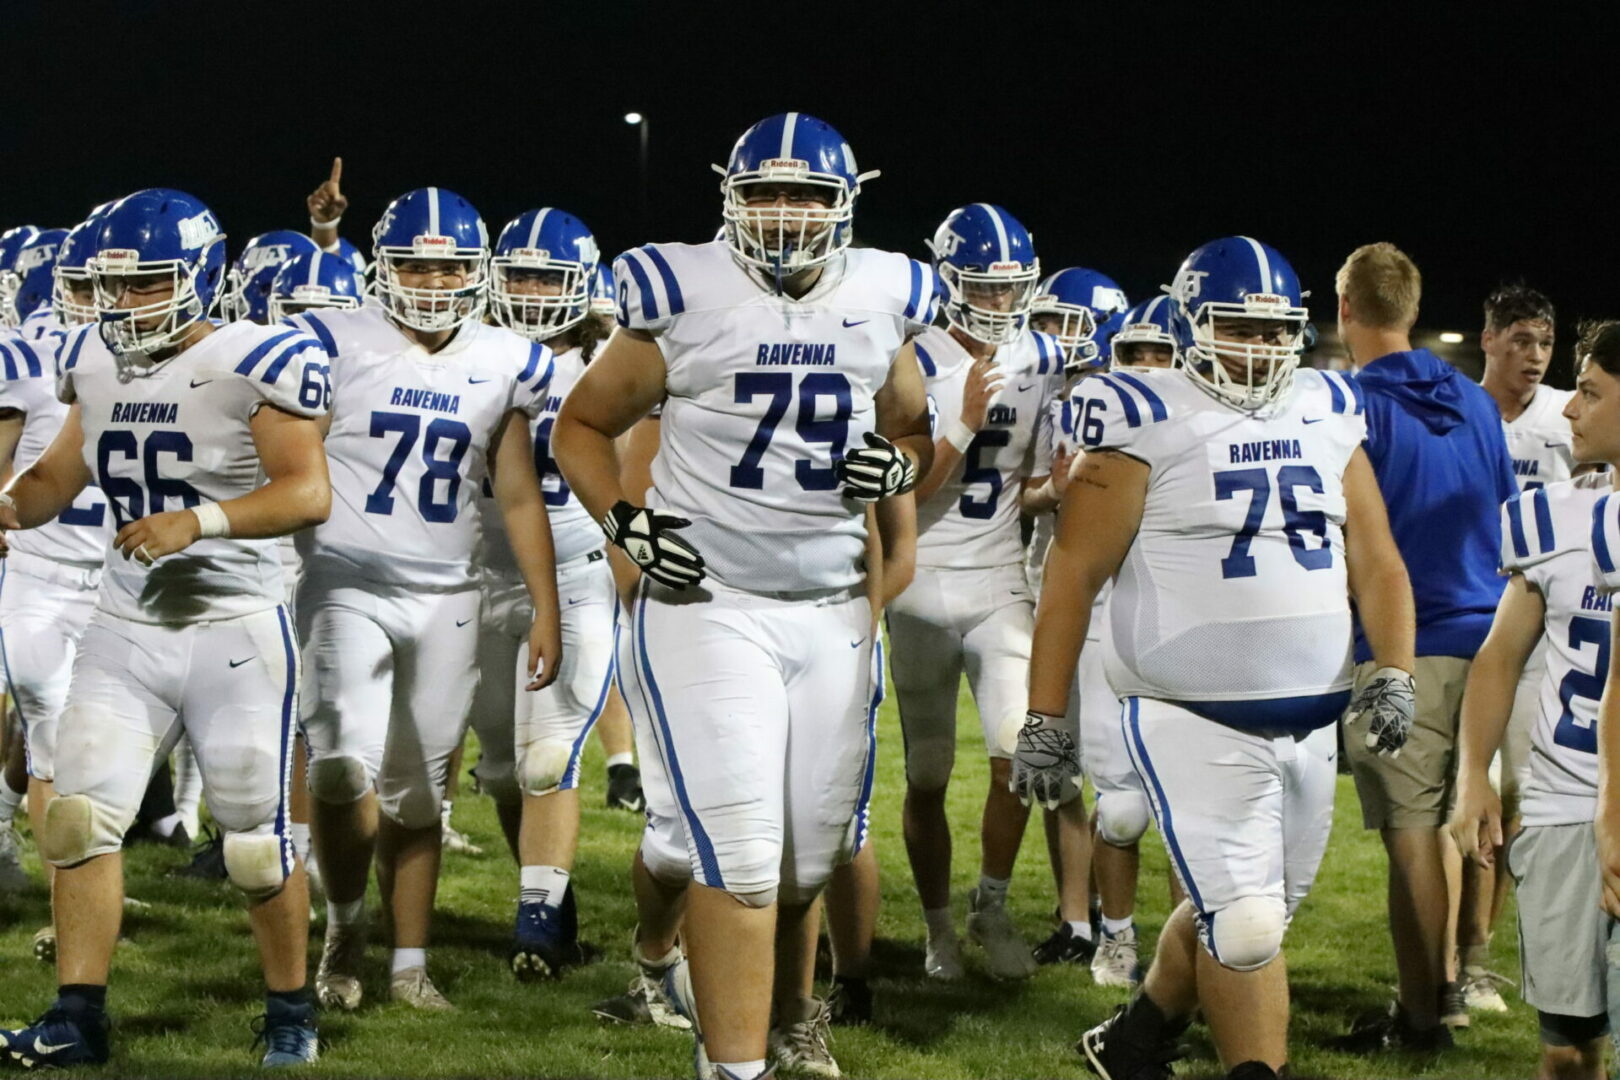 Week 2 high school football schedule plus featured photos of Ravenna's tight win over Beal City